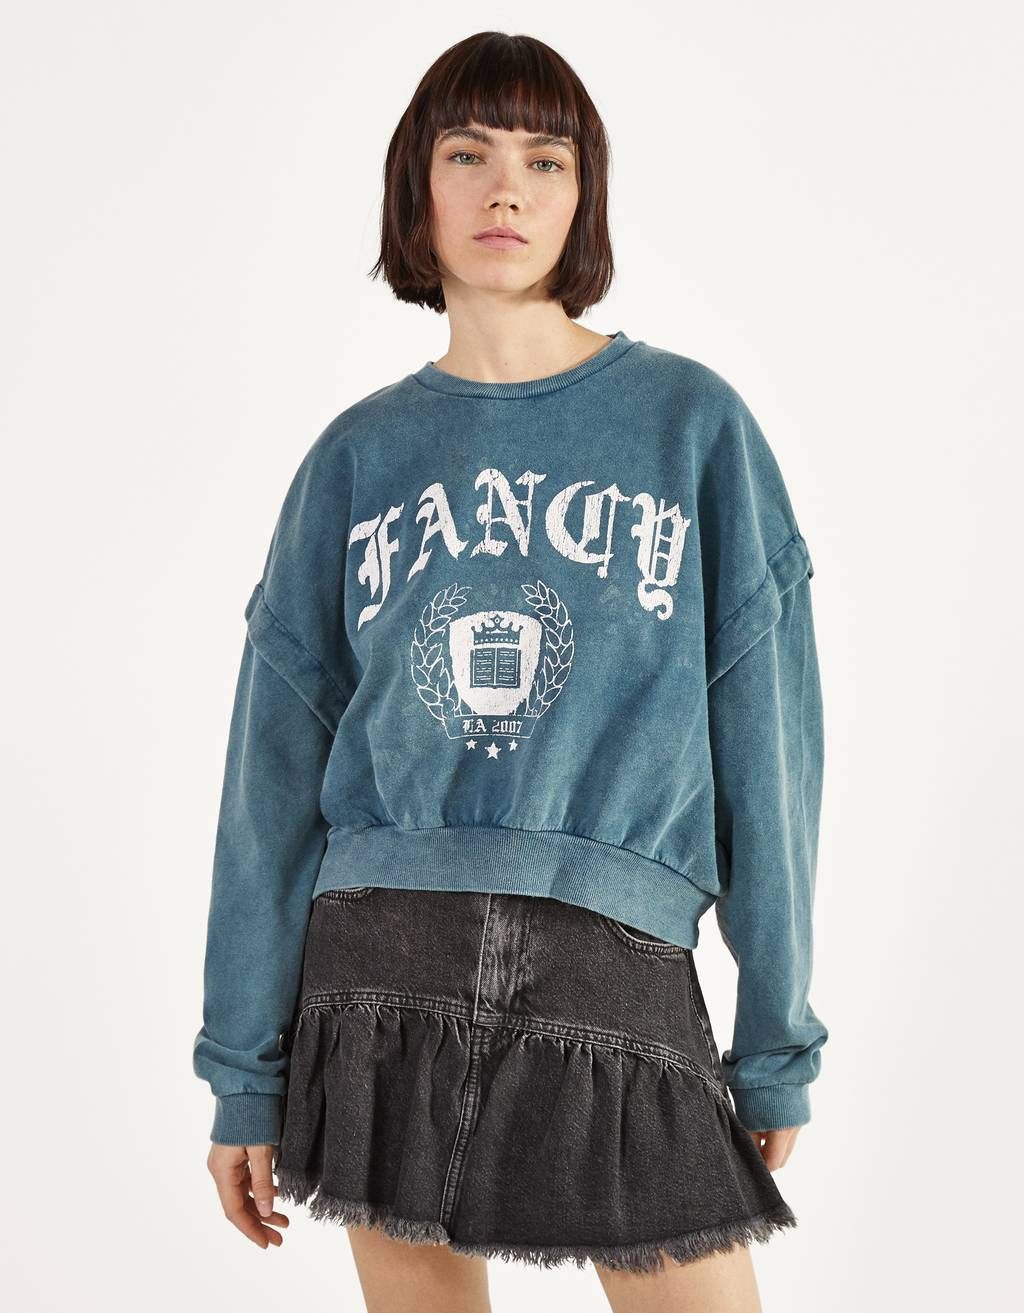 Sudadera acid wash con estampado